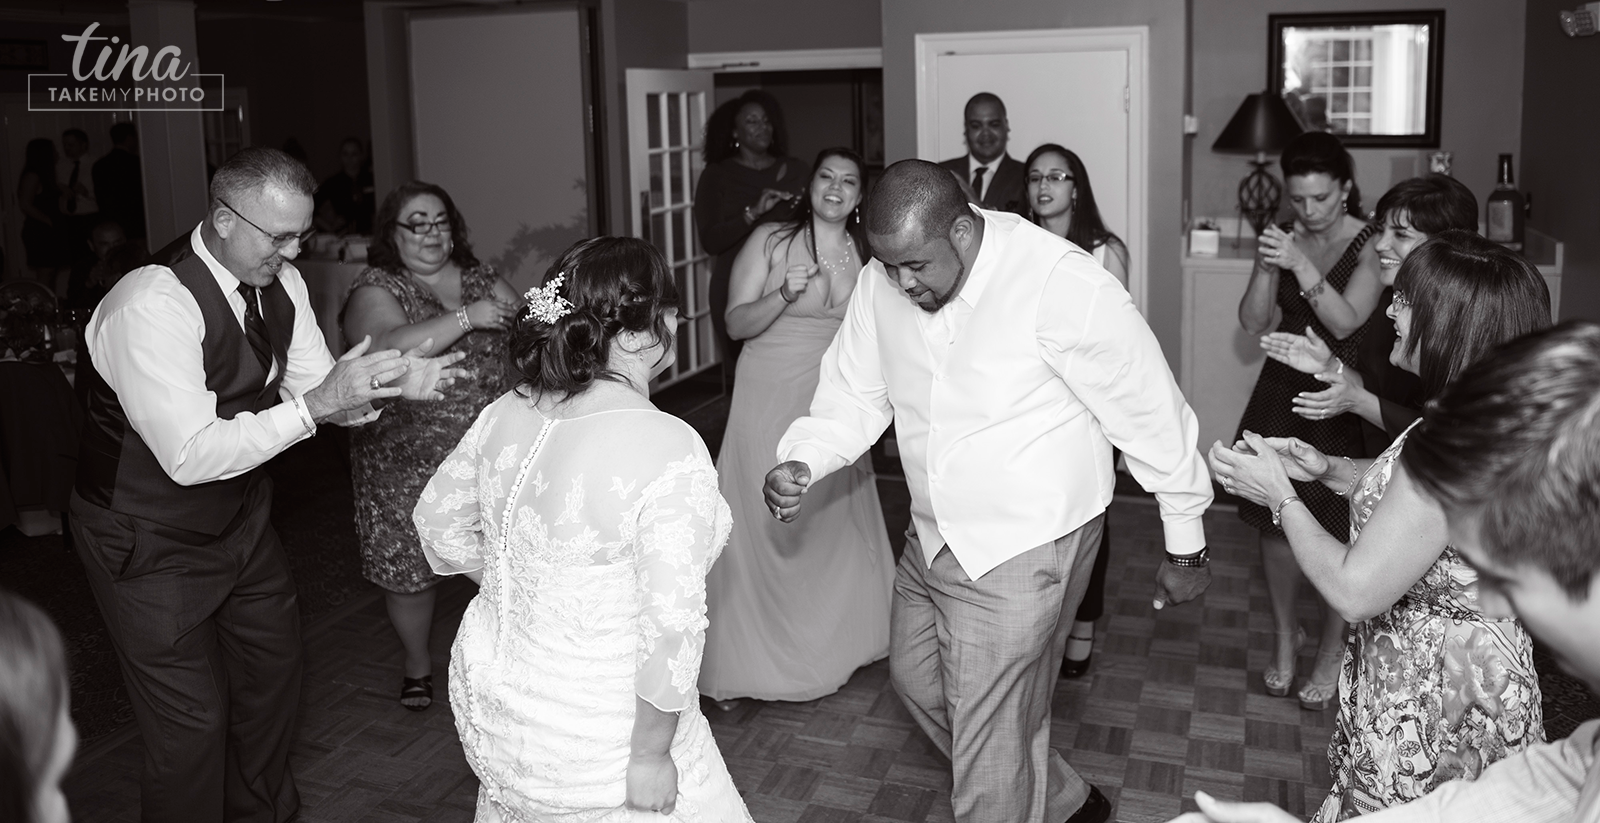 wedding-photographer-reception-guests-fun-dancing-summer-brandermill-country-club-virginia